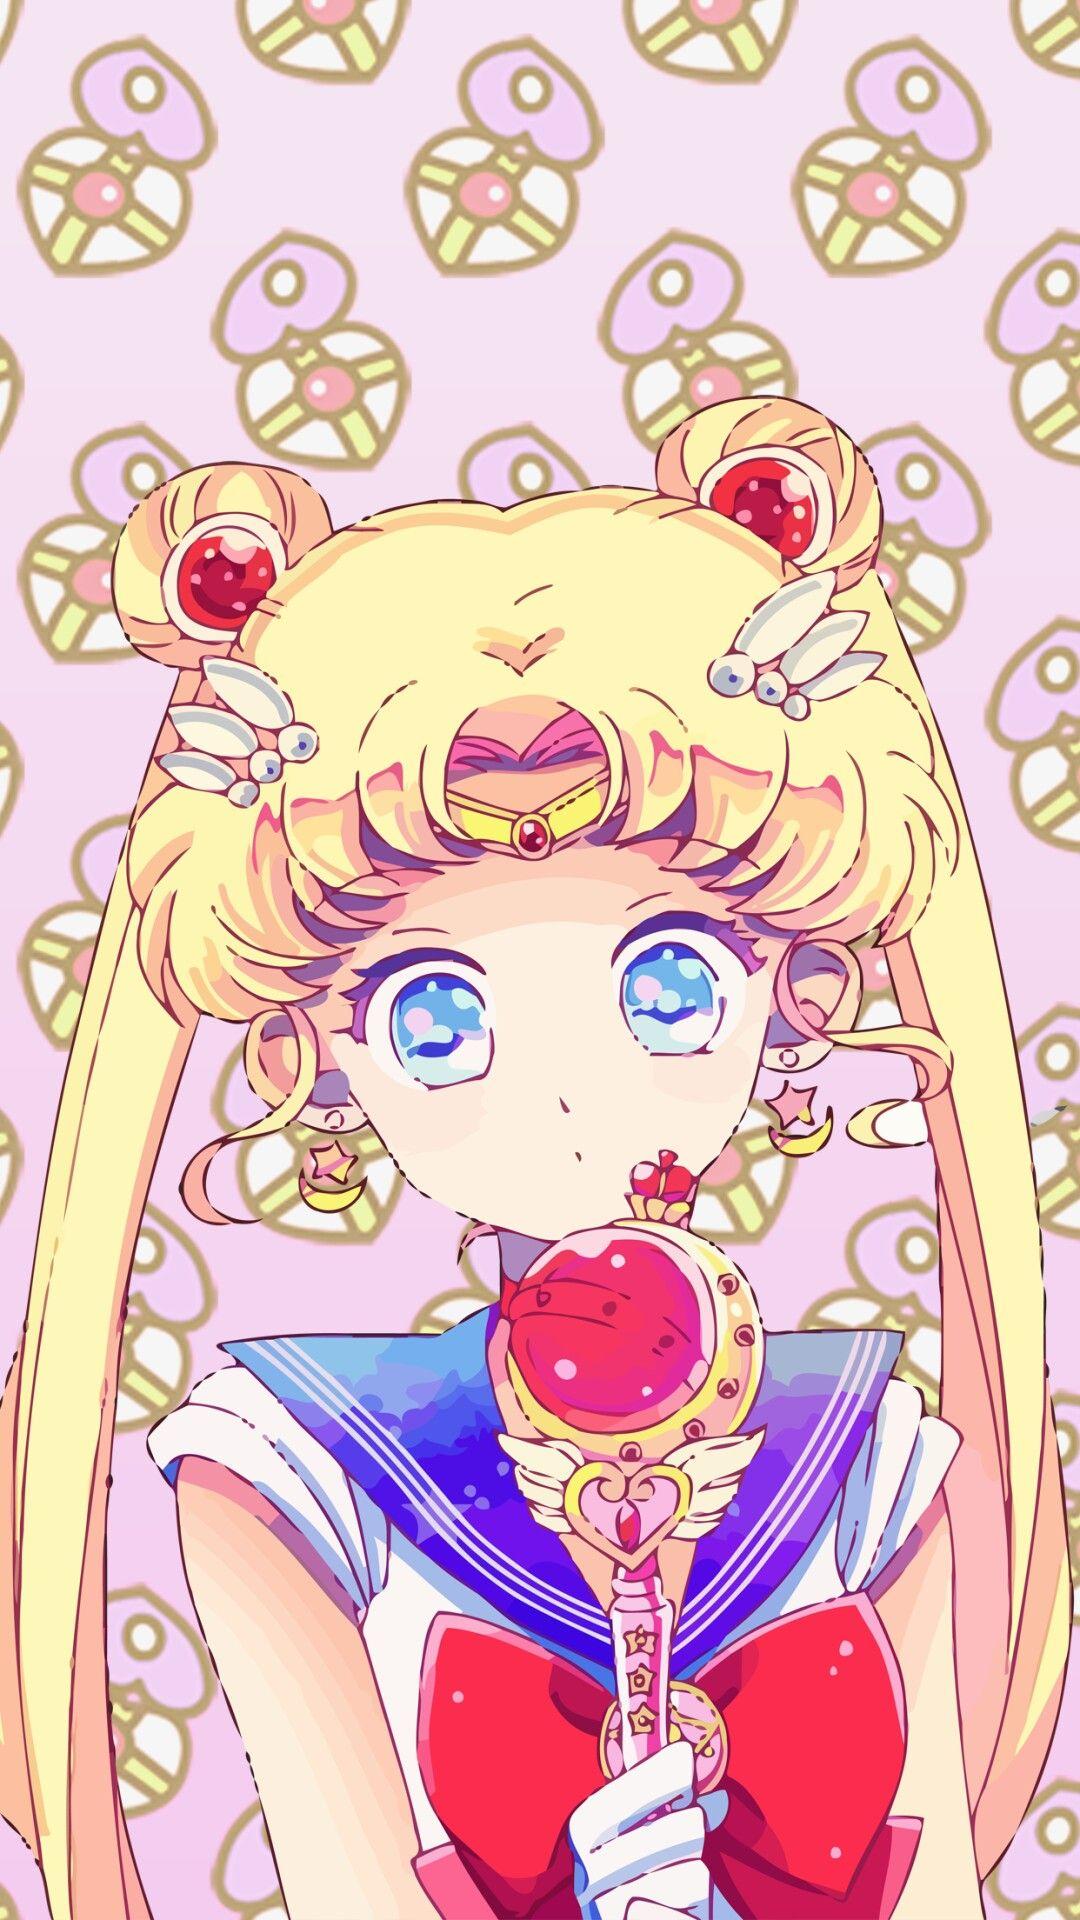 Usagi Kawai Sailormoon Sailor Moon Wallpaper Sailor Moon Crystal Sailor Moon Usagi